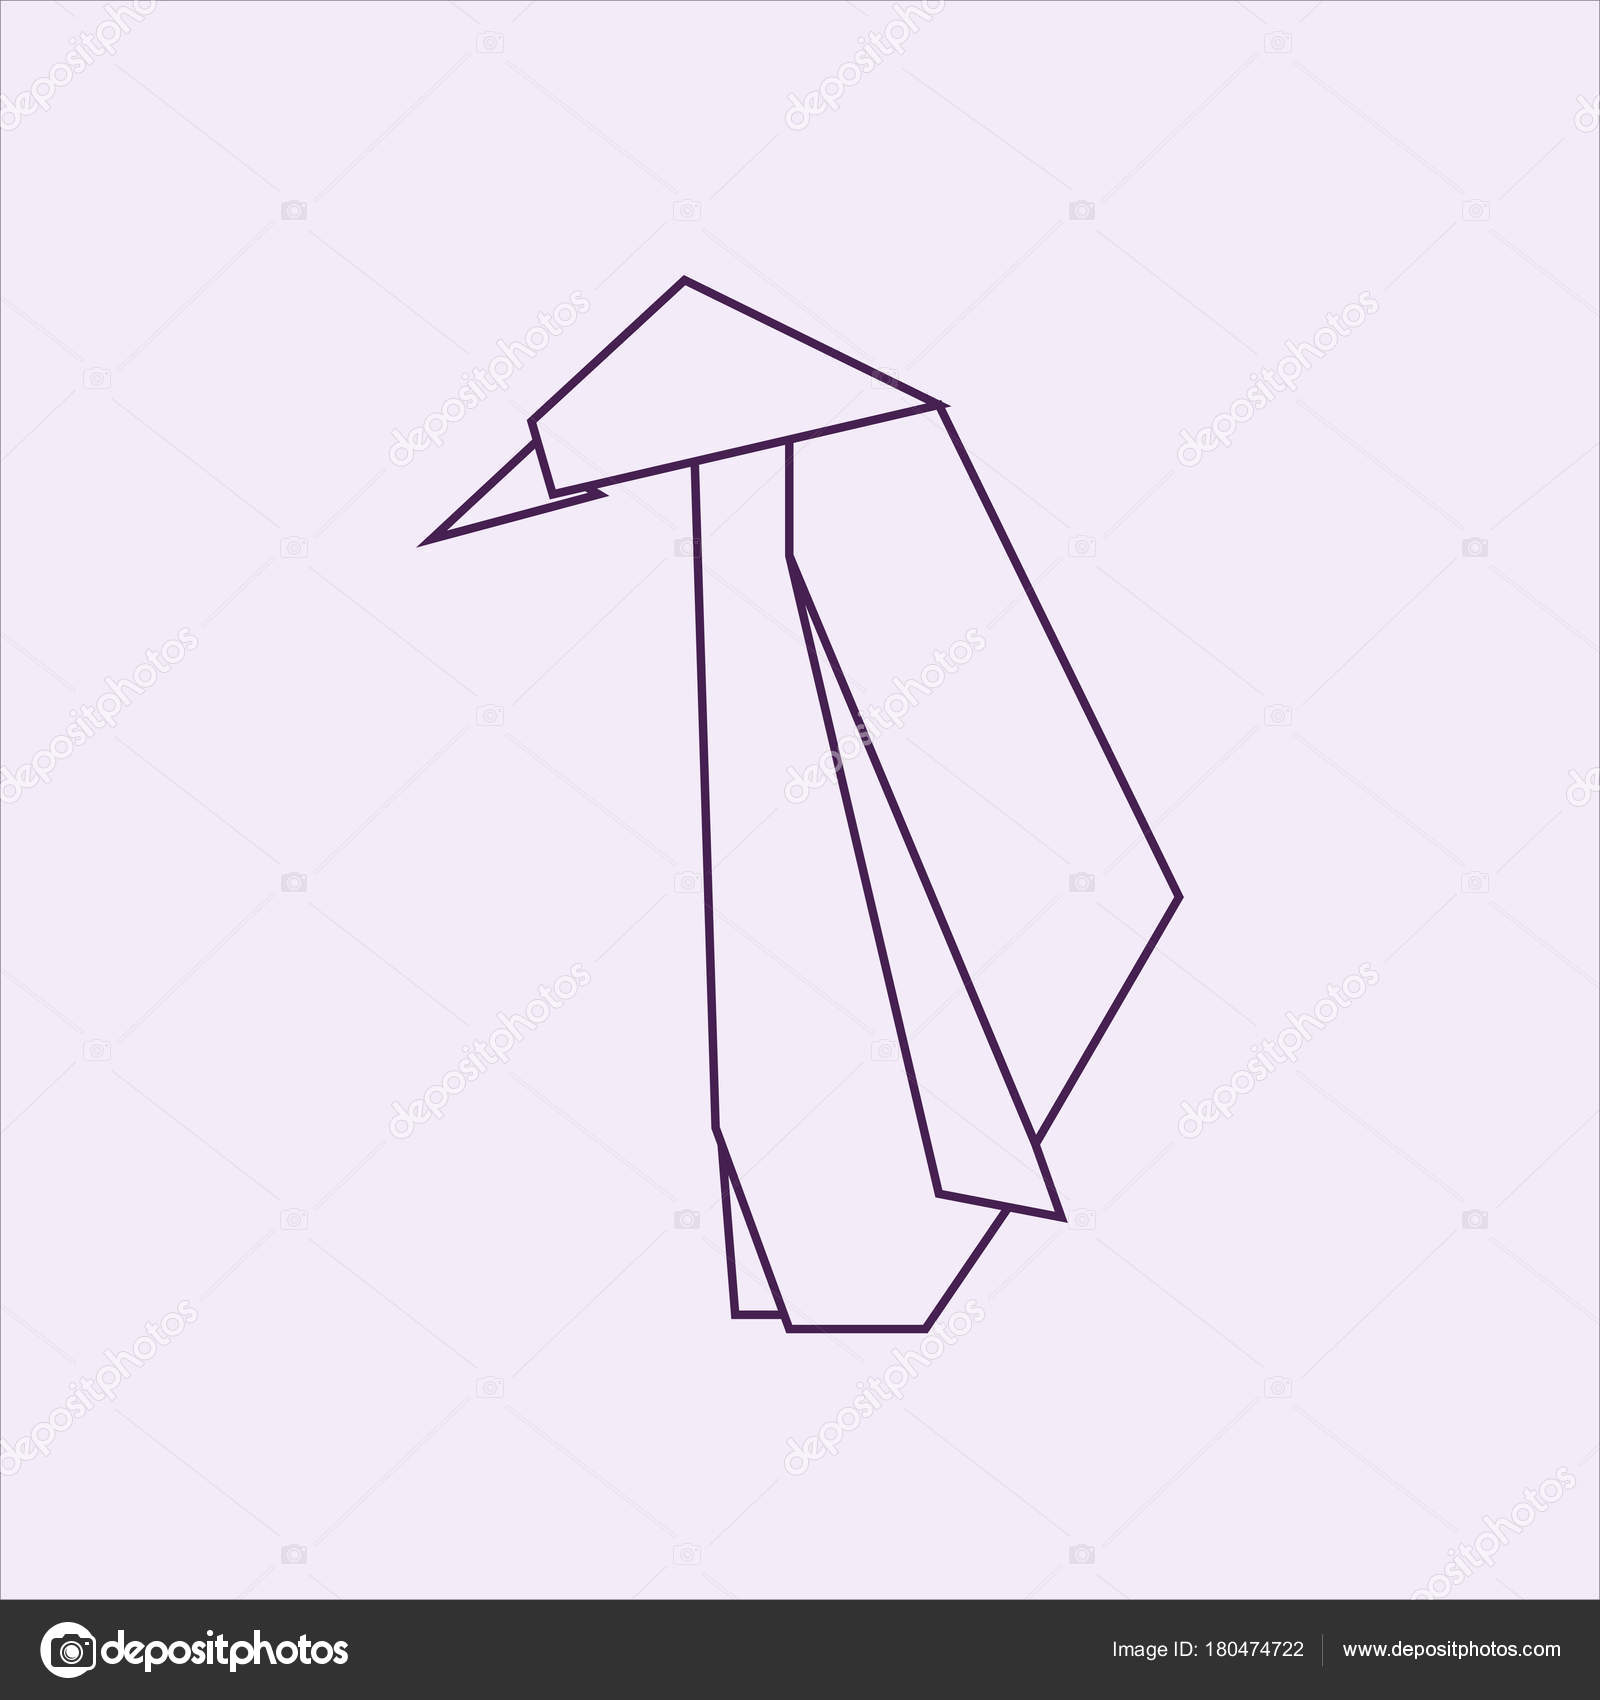 How to make a Penguin out of Paper: Easy Origami Penguin Instructions | 1700x1600